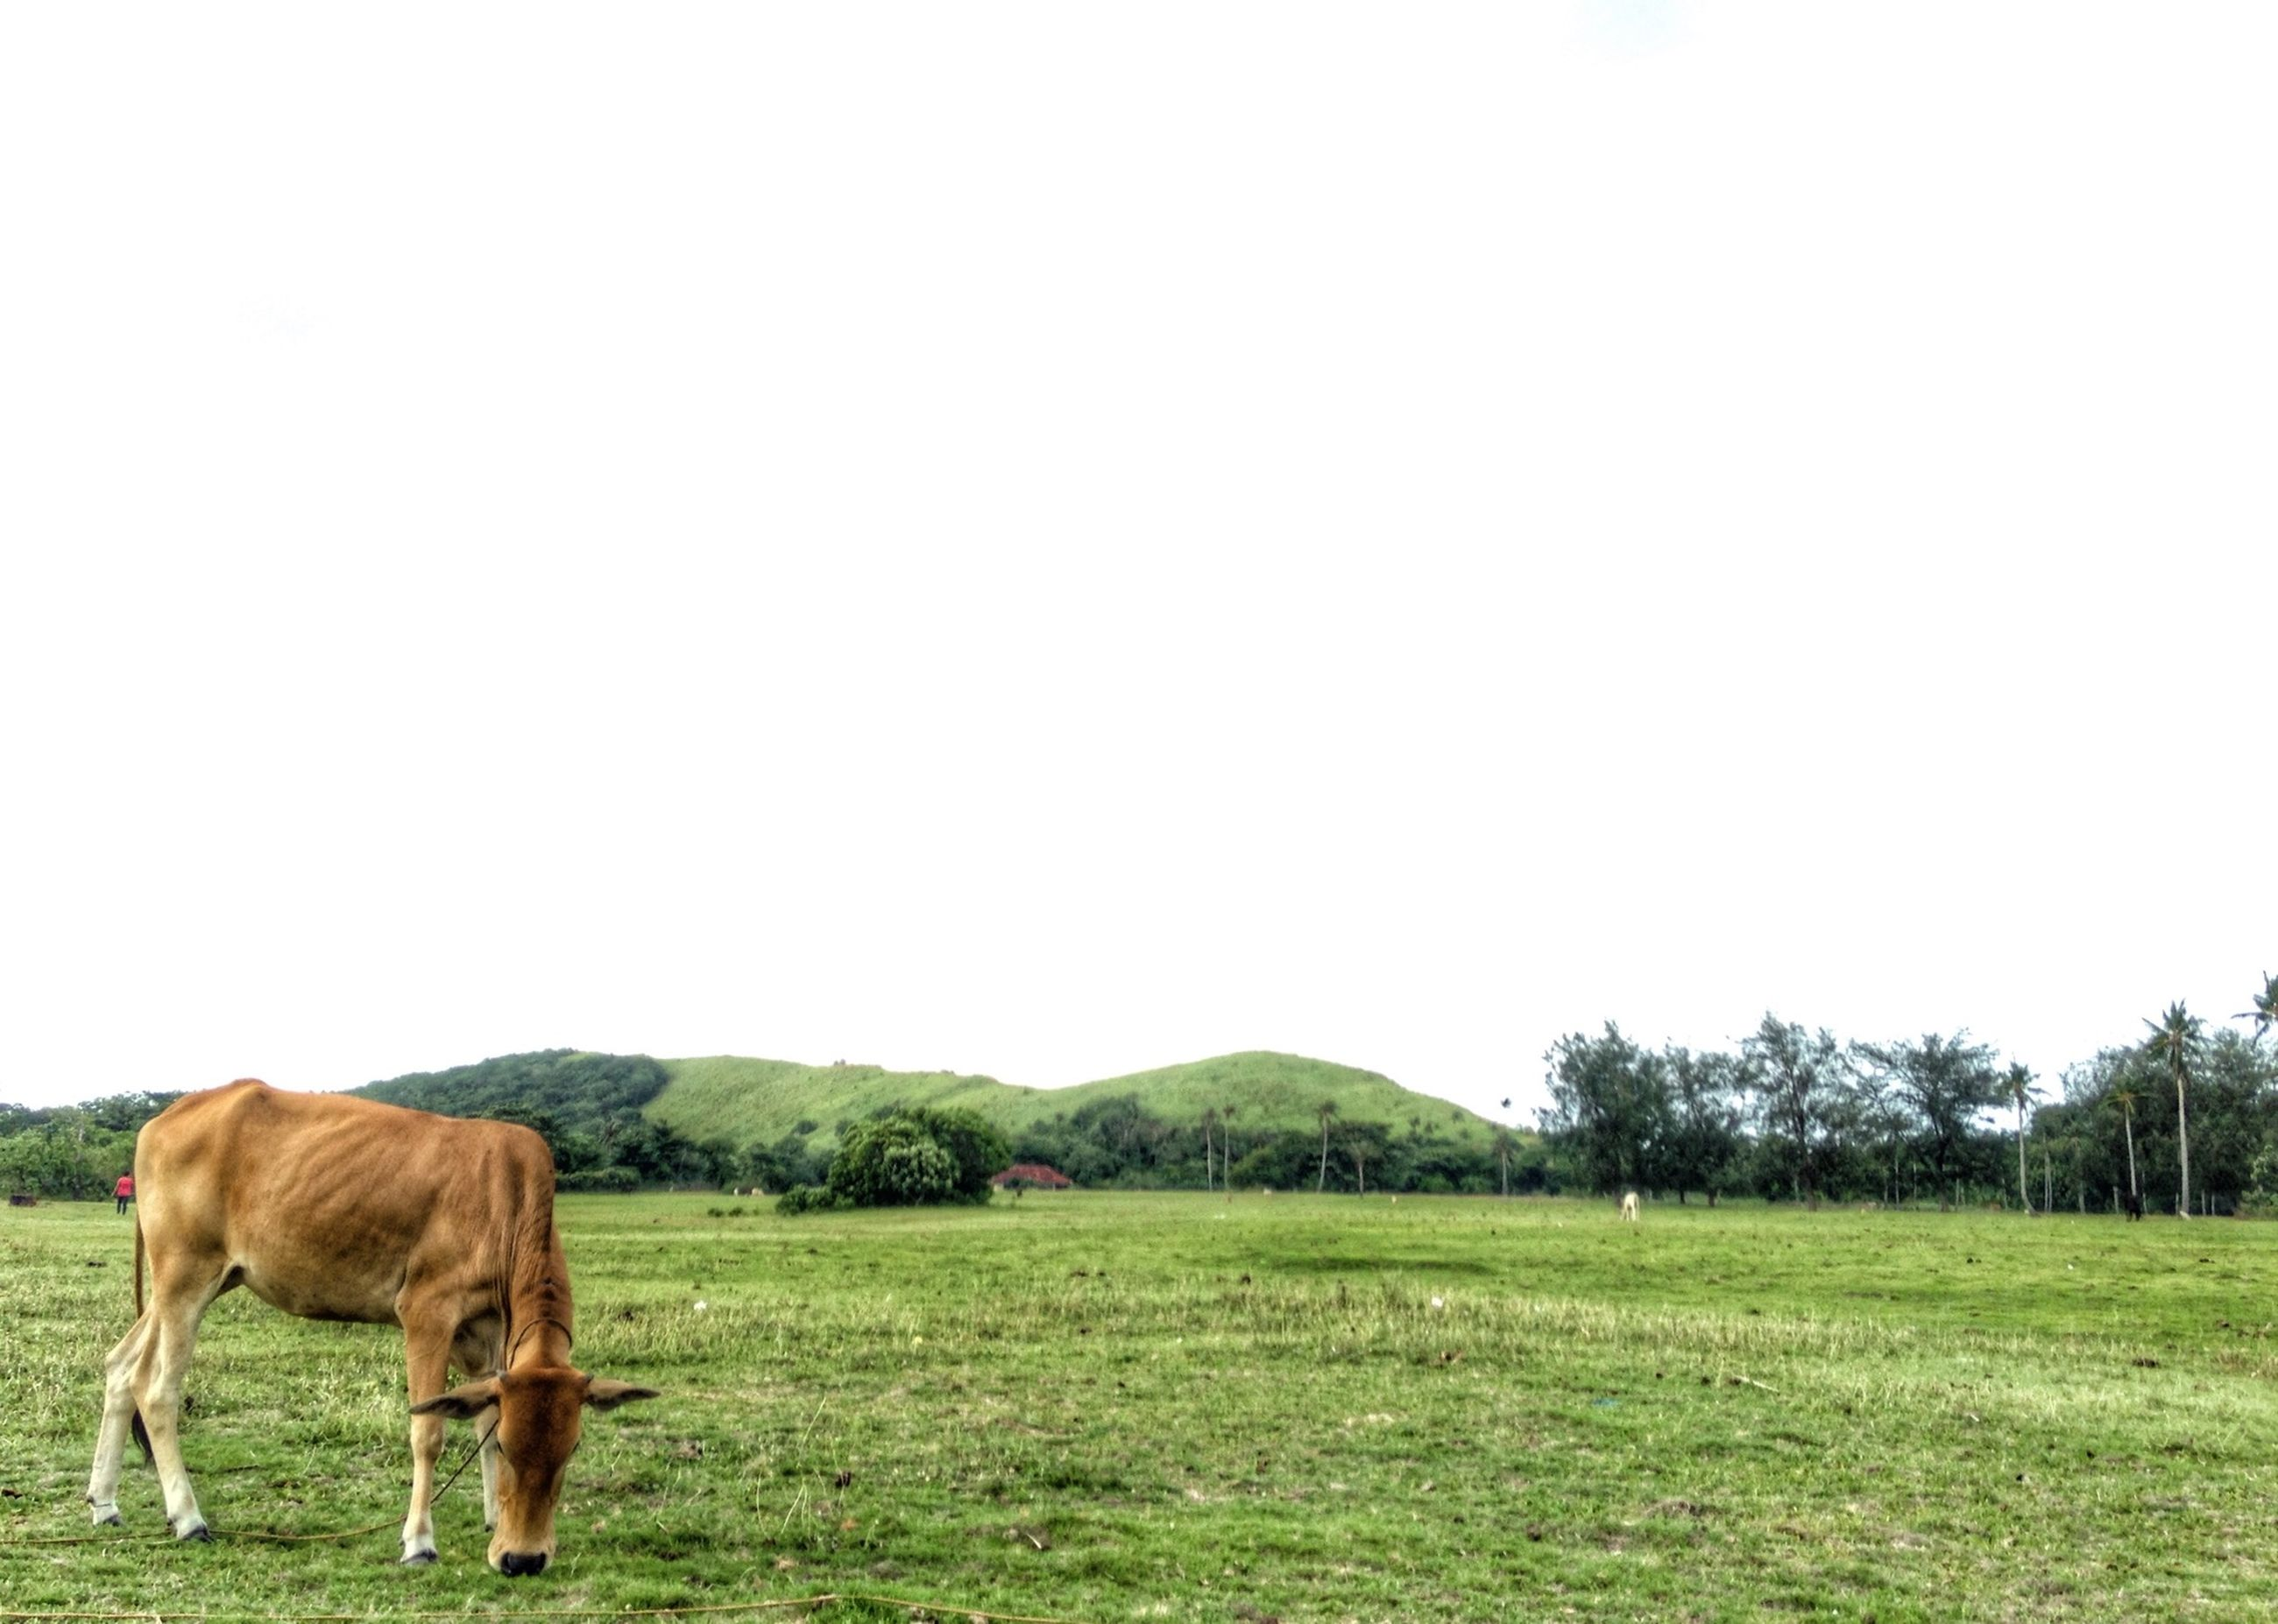 animal themes, mammal, domestic animals, grass, field, copy space, clear sky, one animal, landscape, grassy, livestock, grazing, green color, horse, herbivorous, standing, nature, full length, tranquility, two animals